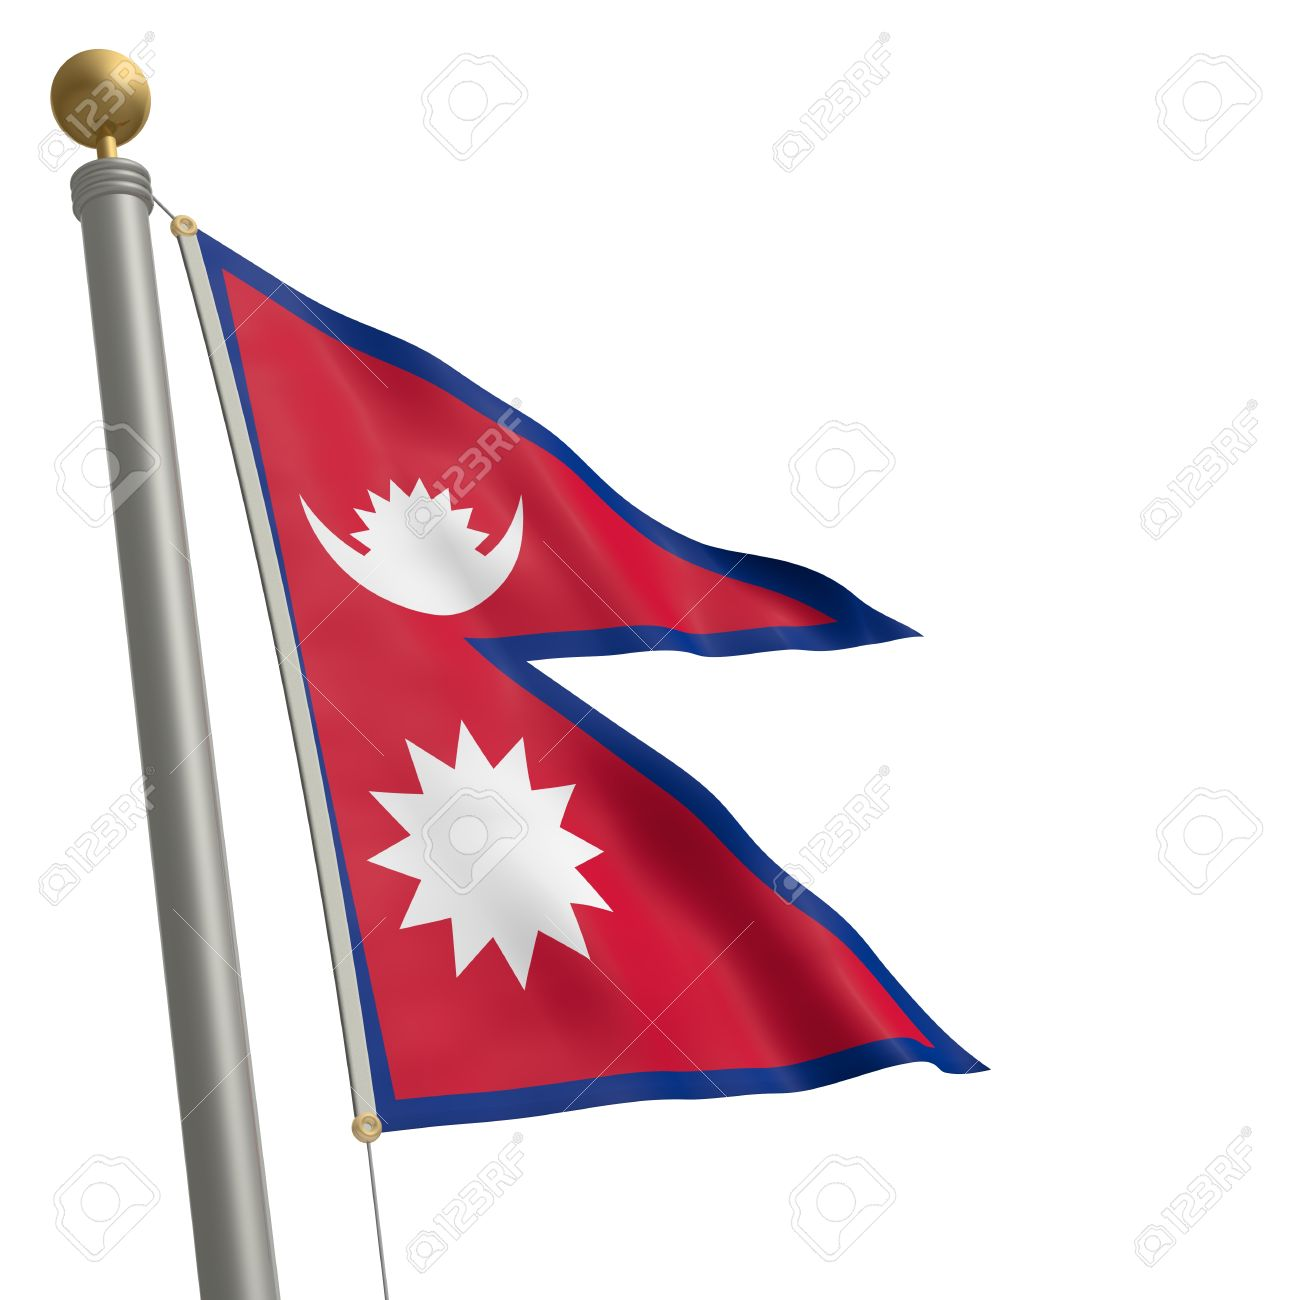 Nepal government condemns mosques attack in New Zealand